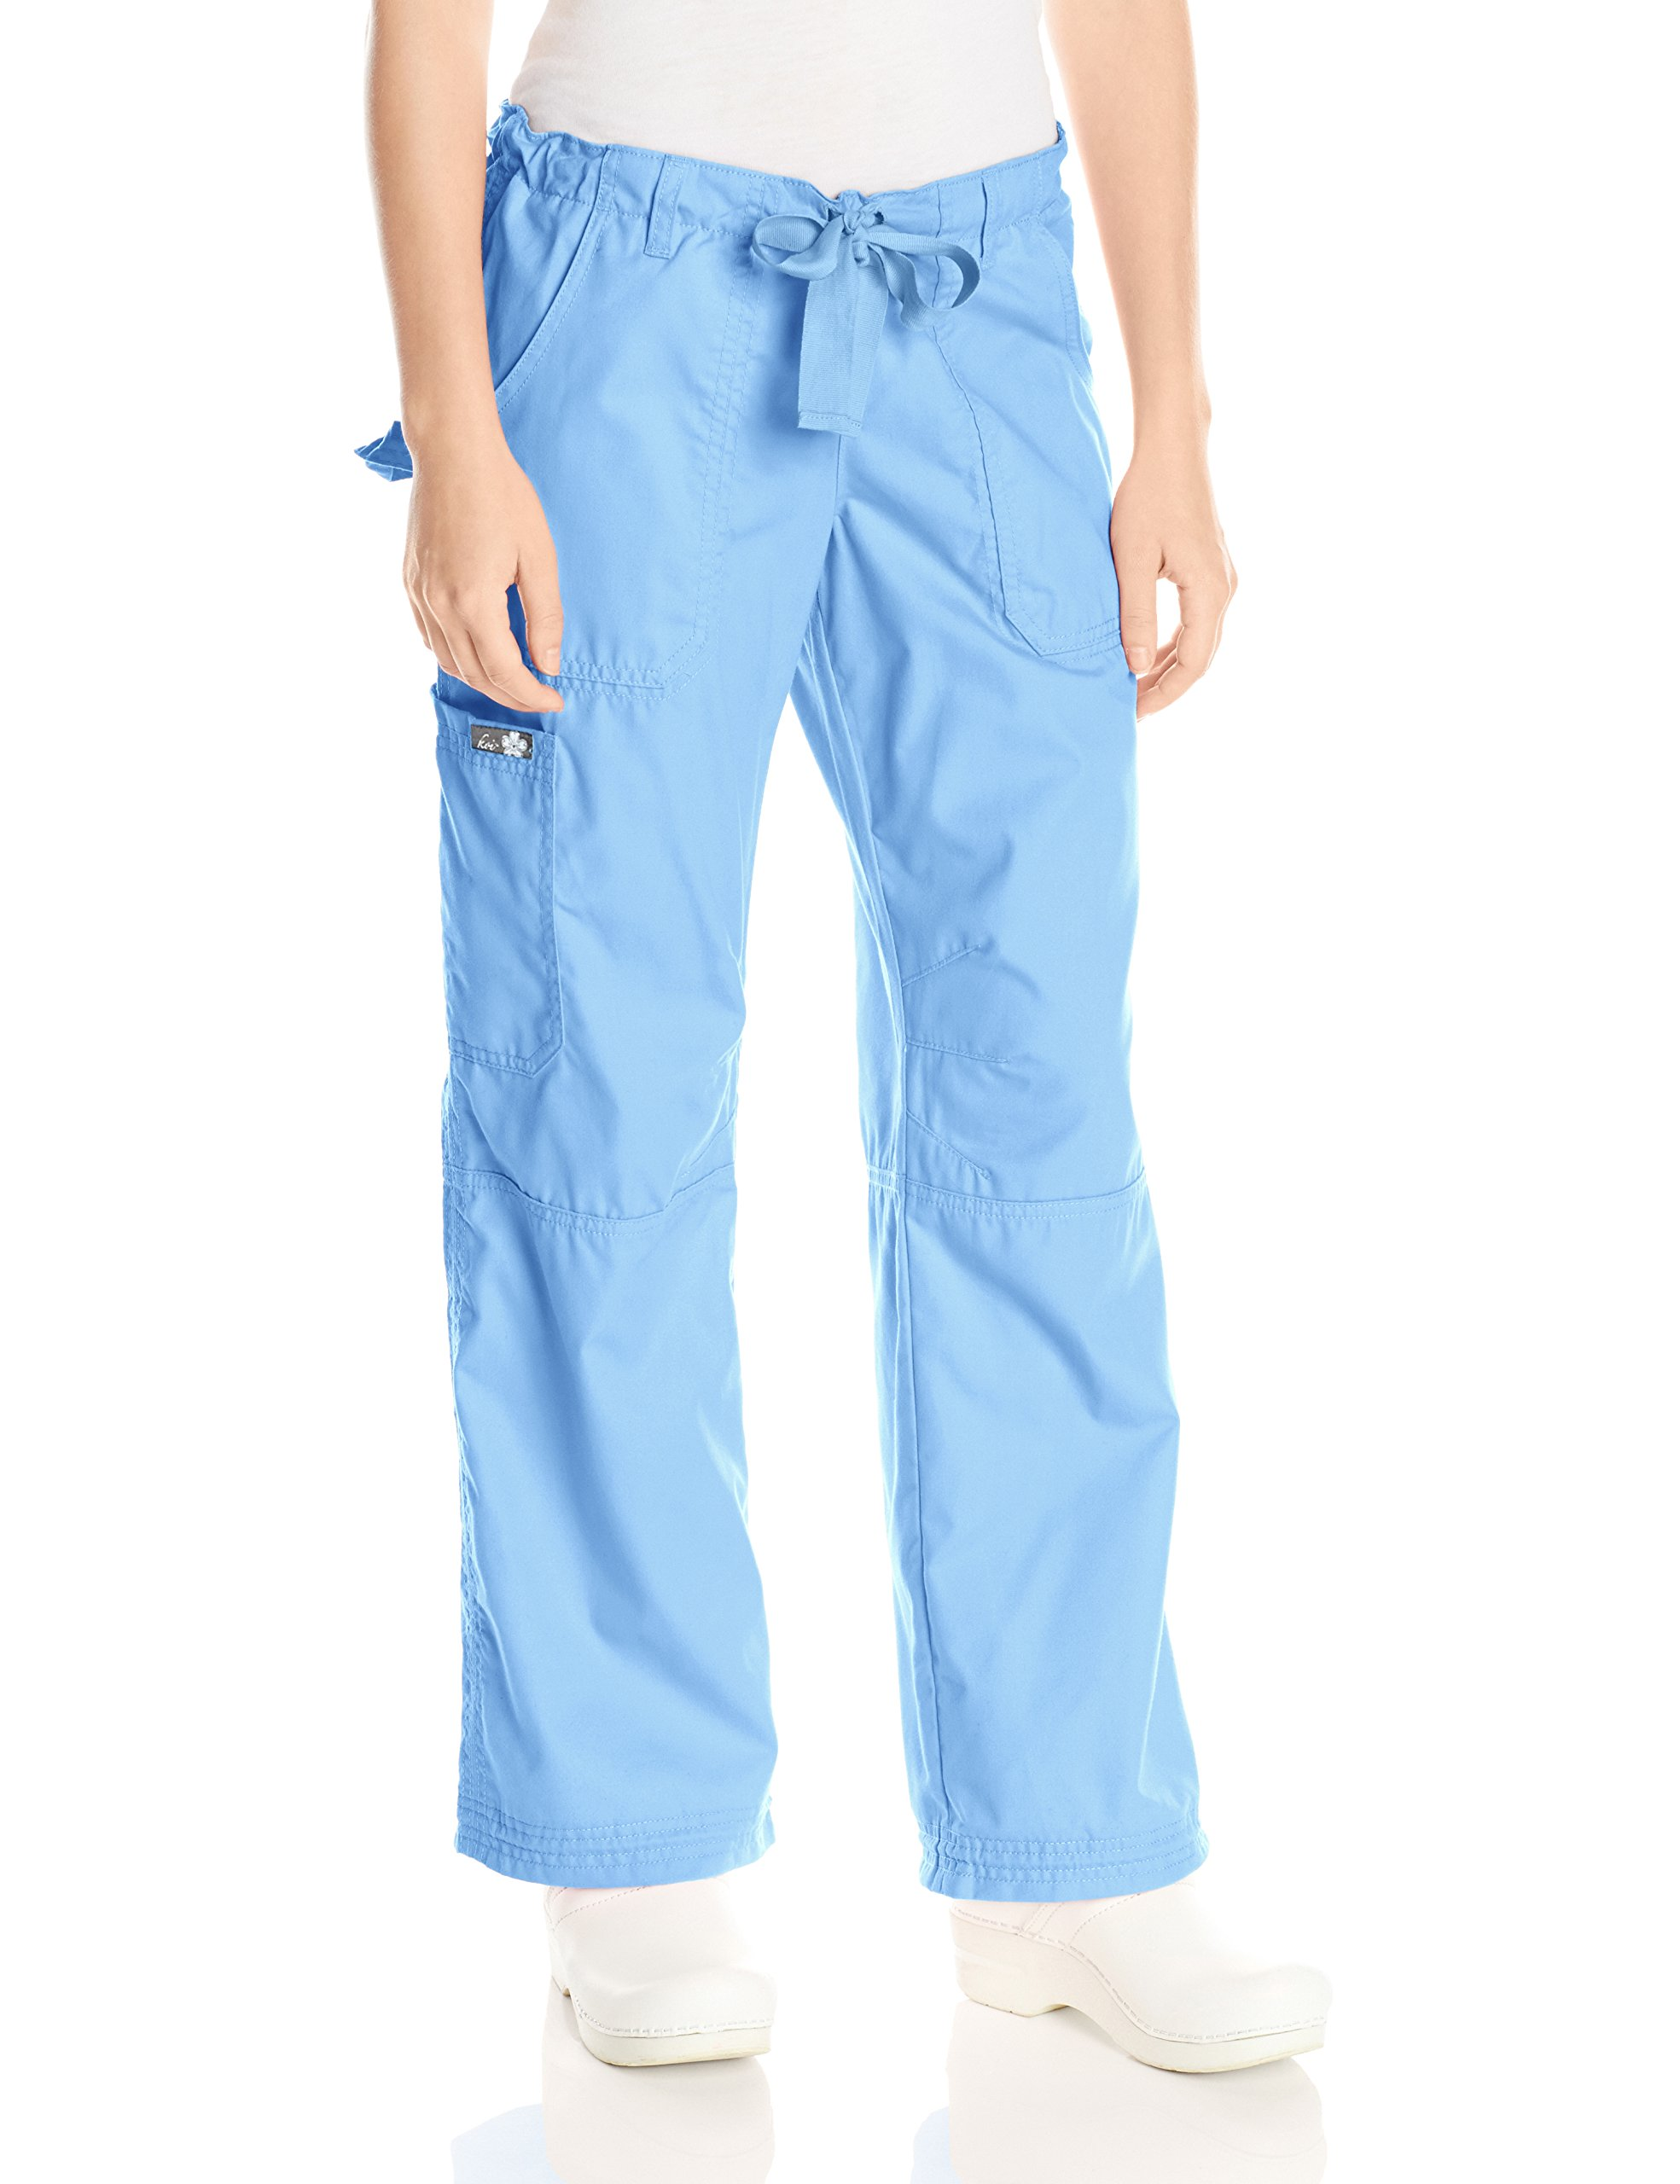 KOI Women's Lindsey Ultra Comfortable Cargo Style Scrub Pants (Petite Sizes), Cornflower, 3X-Large/Petite